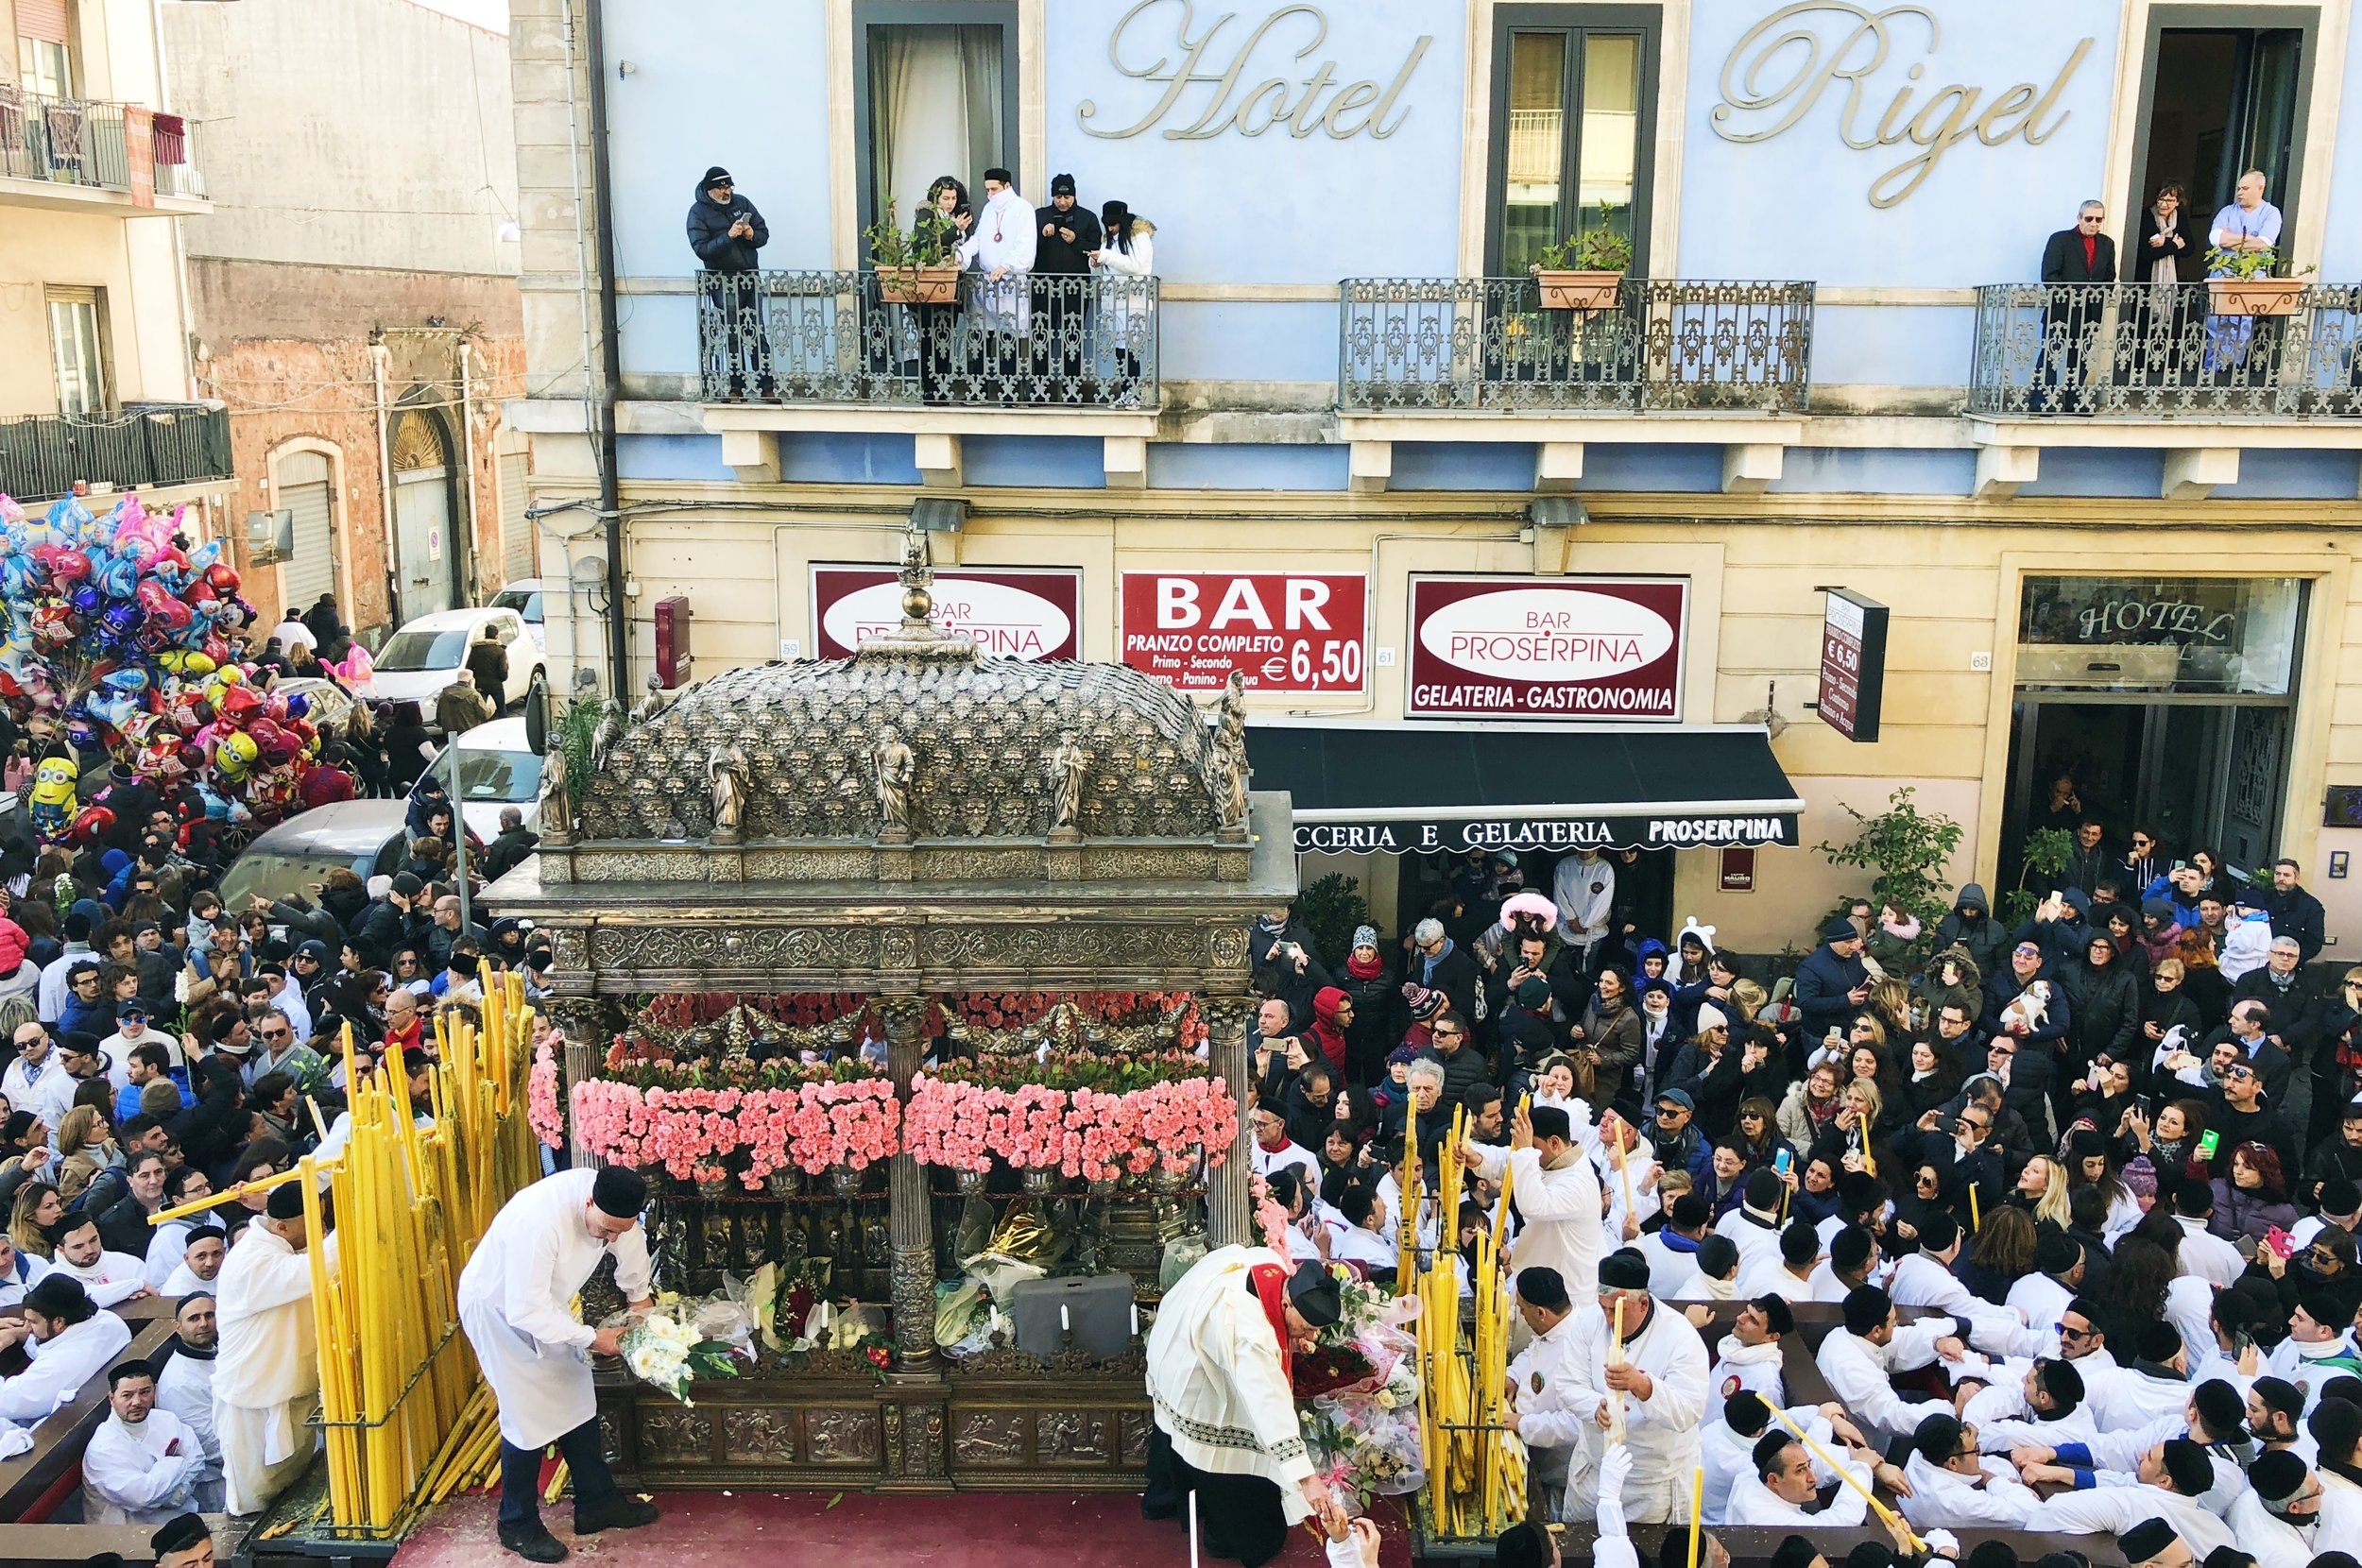 Sant'Agata travels the entire city in a three-day procession.